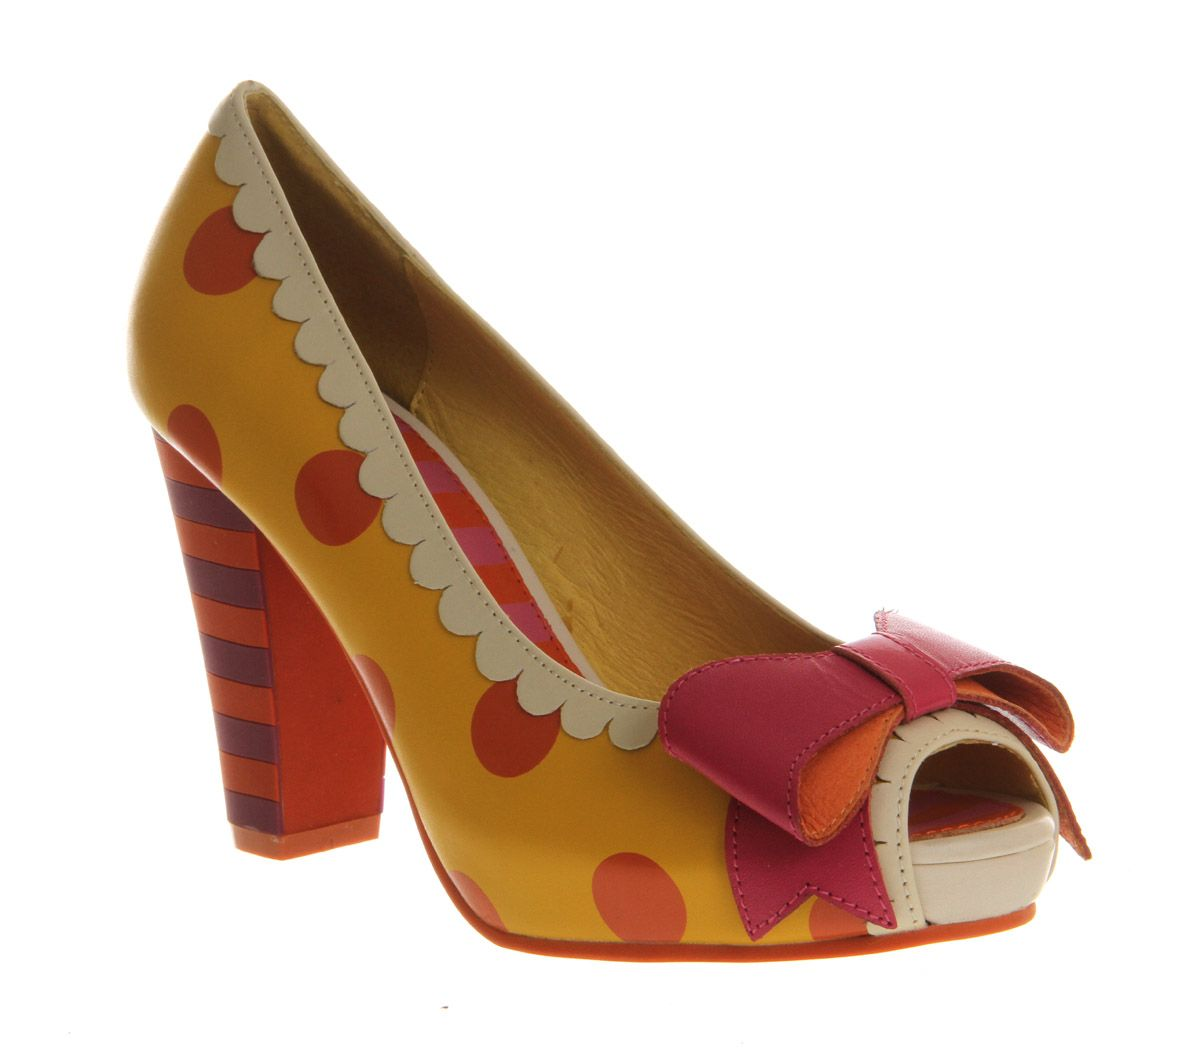 new concept 62250 c4f89 Lola Ramona Angie P Peeptoe Yellow Orange Polka Leather ...